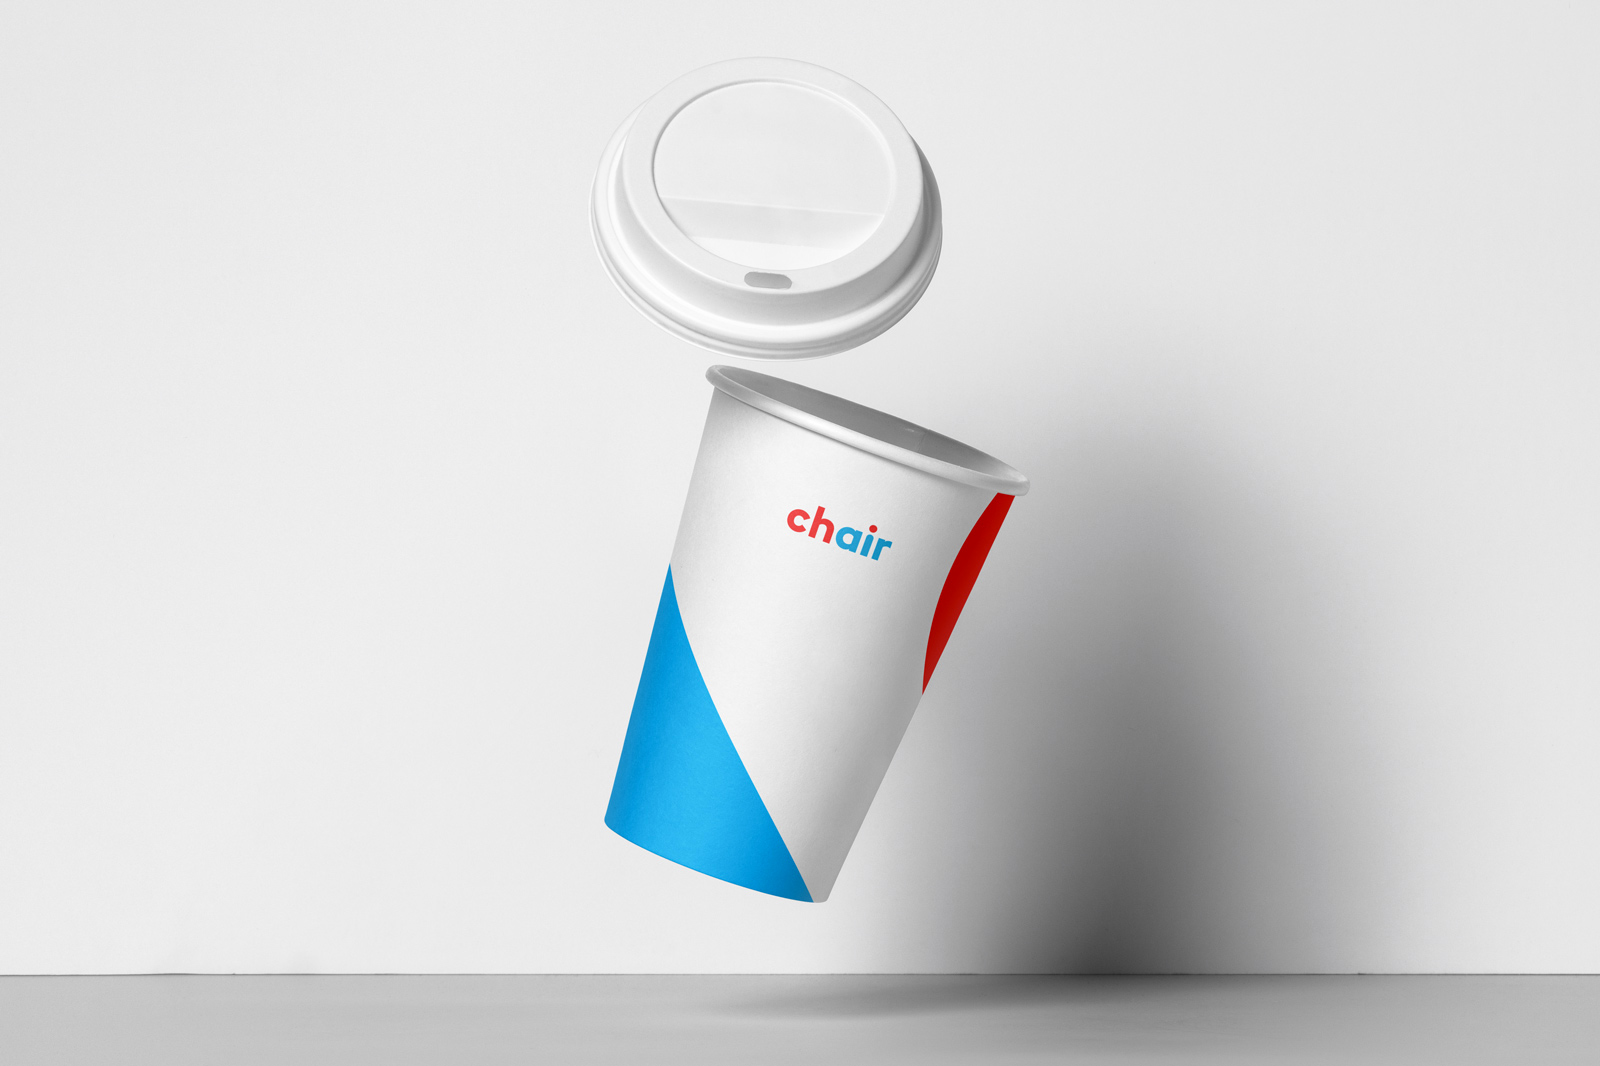 New Logo, Identity, and Livery for Chair by Branders